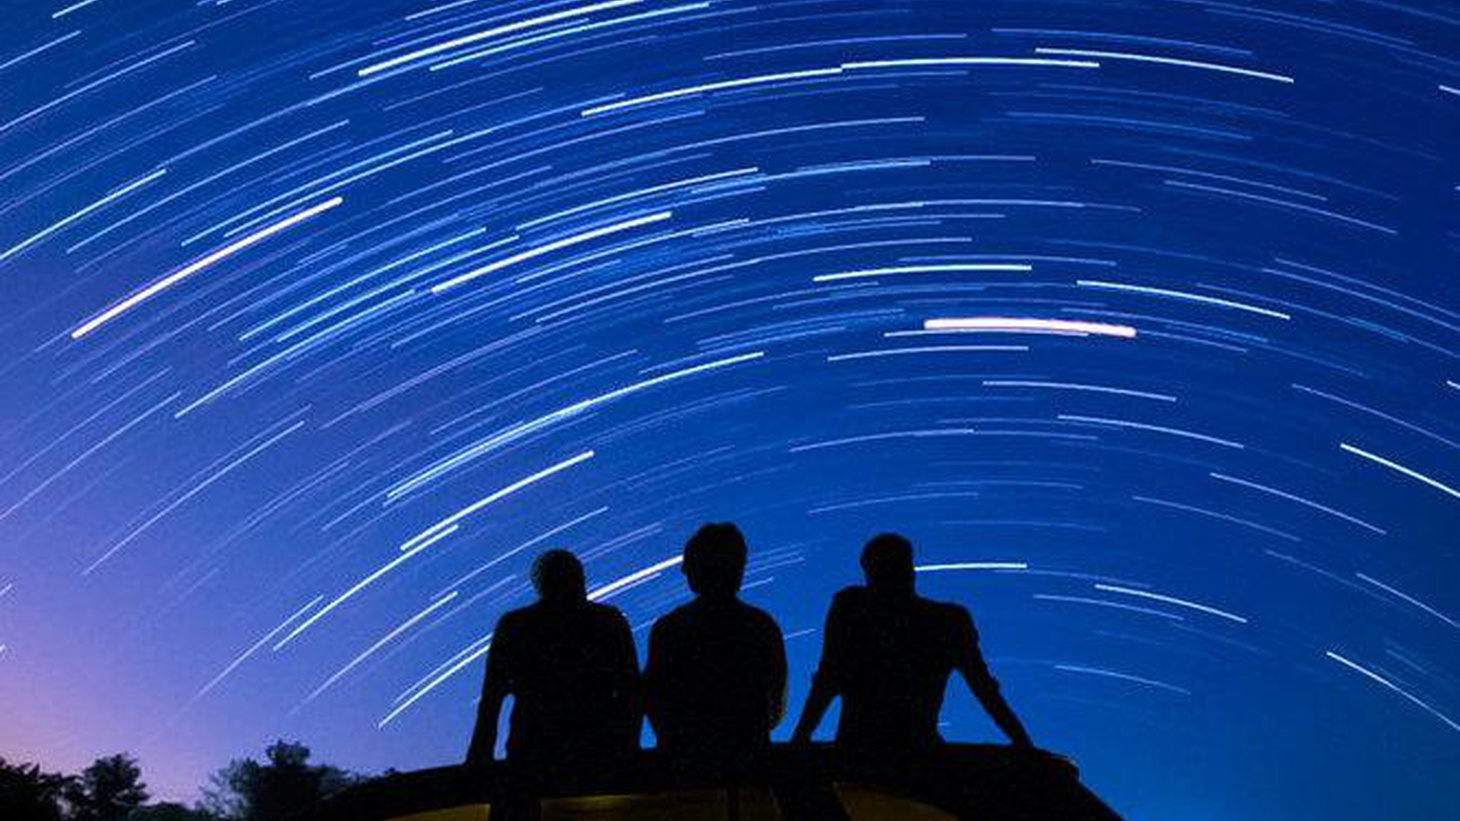 In this episode, TED speakers look up to the night sky and consider our relationship with what might be out there.